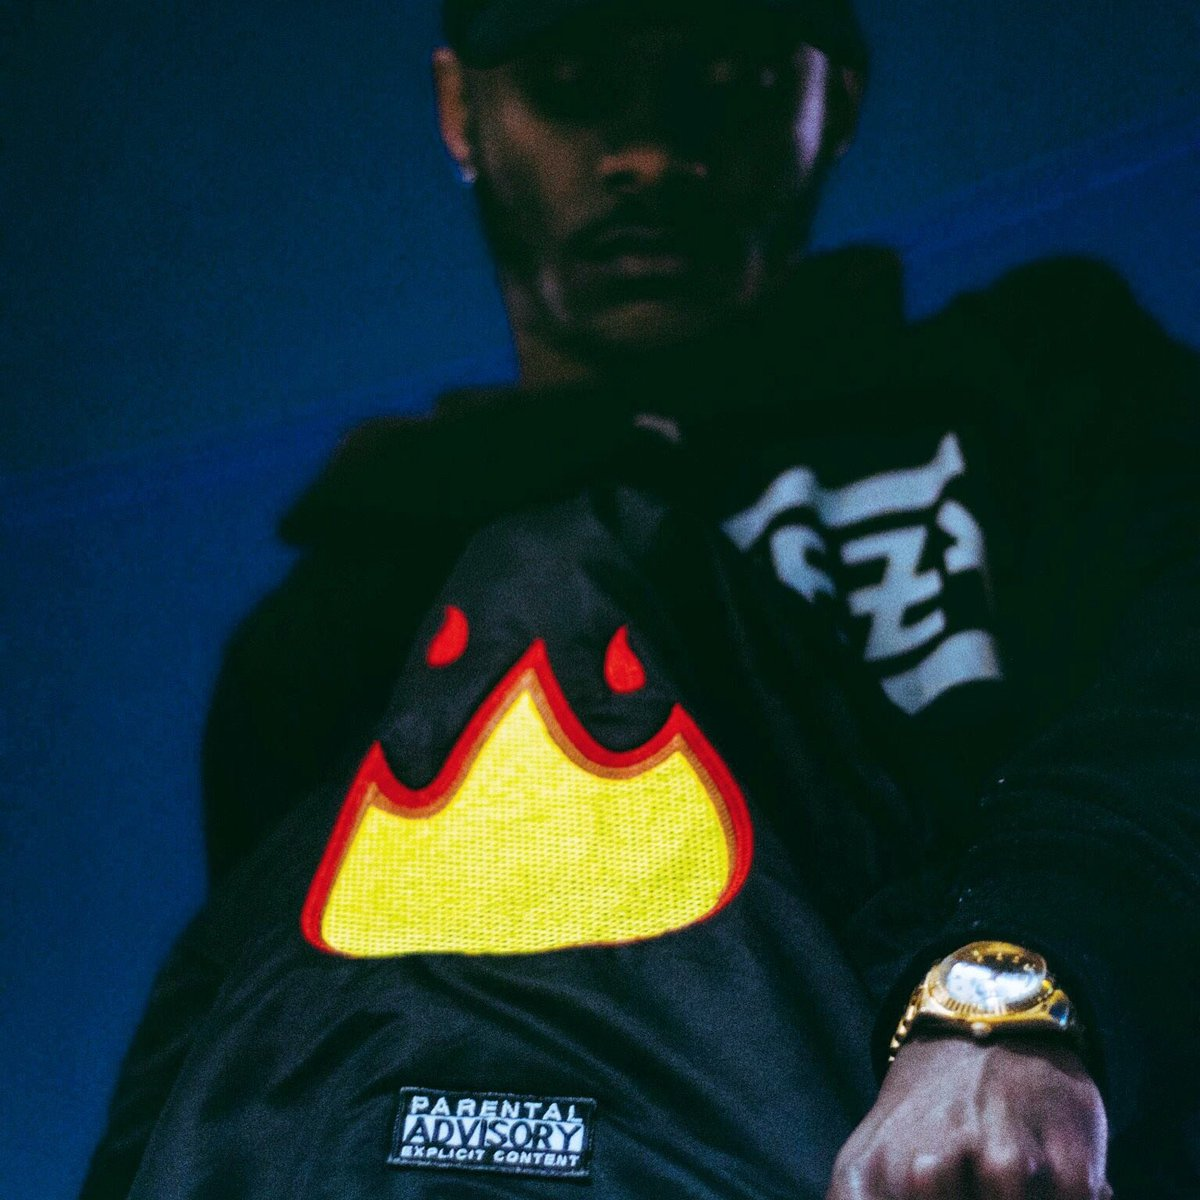 Tweezy Shares The Official Tracklist For 'Fuego' CsI 5CyWEAAHM s